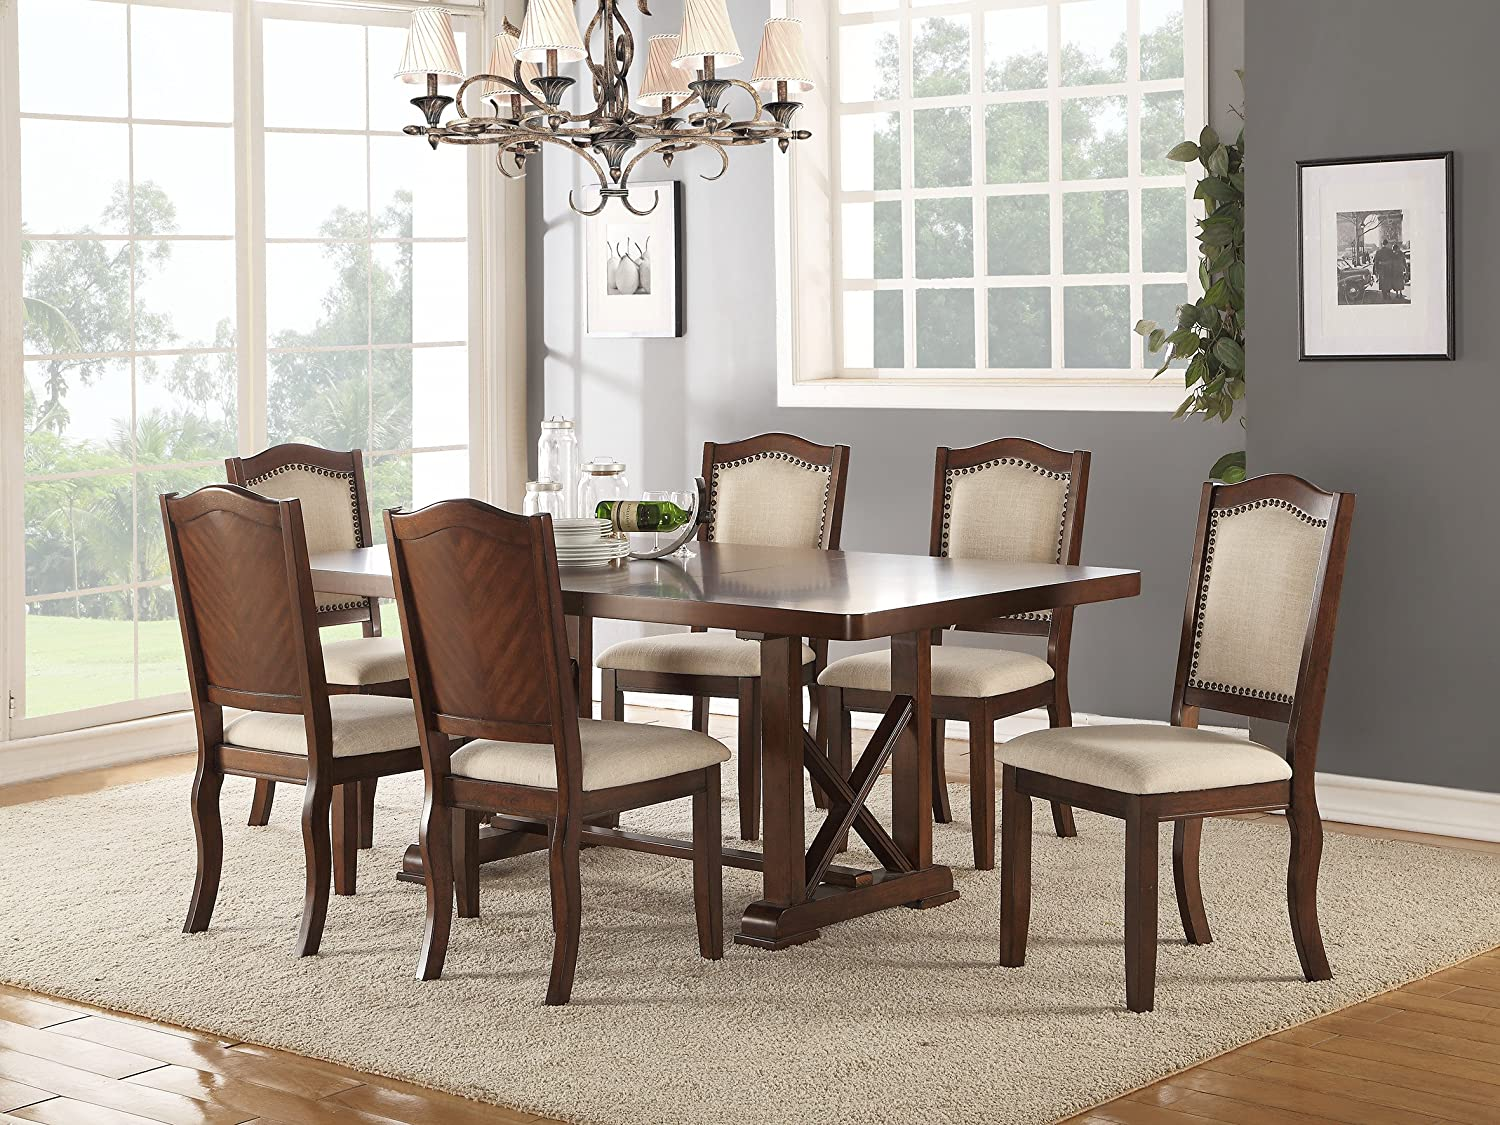 Dining room formal look classic 7pc set dark cherry dining table rubber wood faux leather cream cushion seat unique side chairs kitchen dining furniture